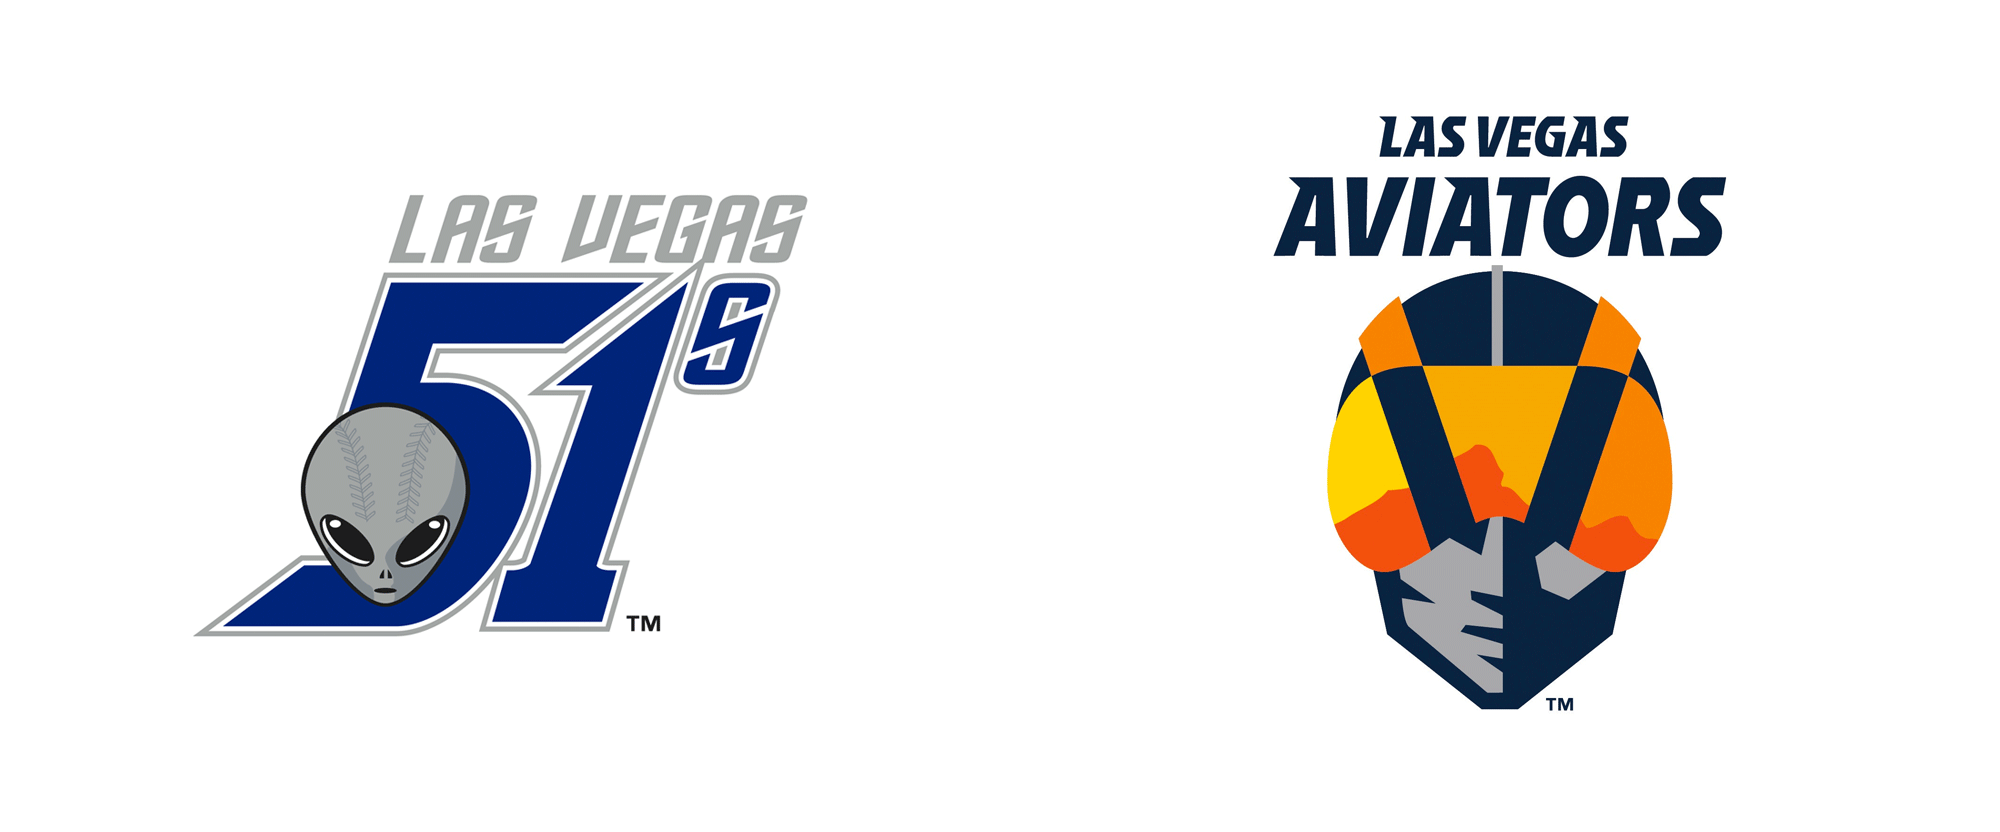 New Name and Logo for Las Vegas Aviators